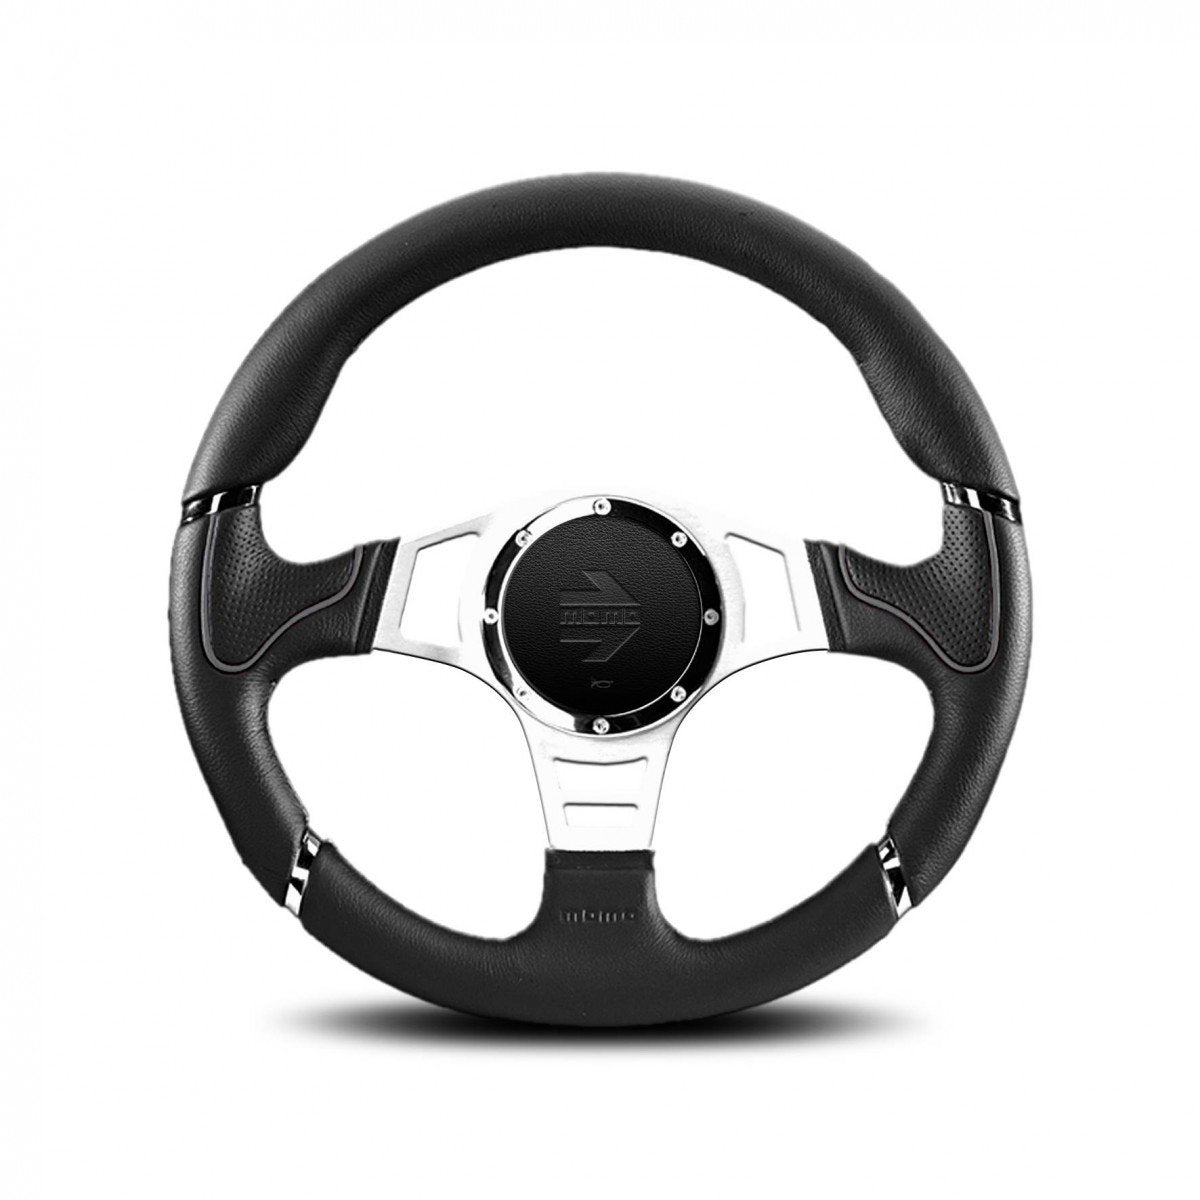 MOMO Millenium Sport- Black/Grey Profile 350mm Street Steering Wheel FAF Automotive